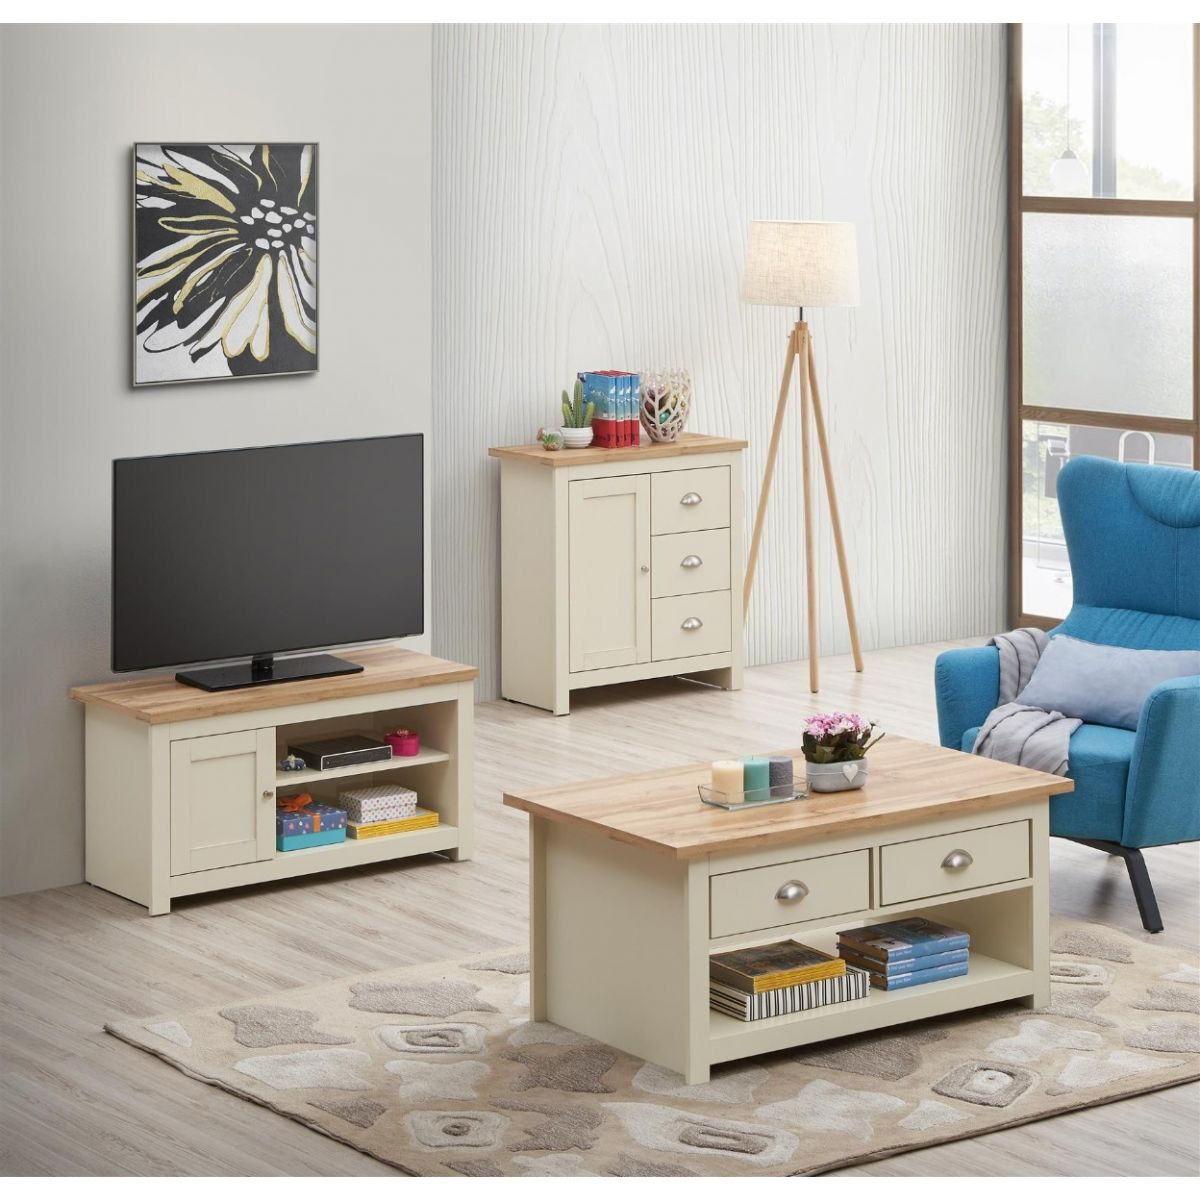 3 PIECE LIVING ROOM SET (1 DOOR TV UNIT, 1 DOOR SIDEBOARD, 2 DRAWER COFFEE TABLE)